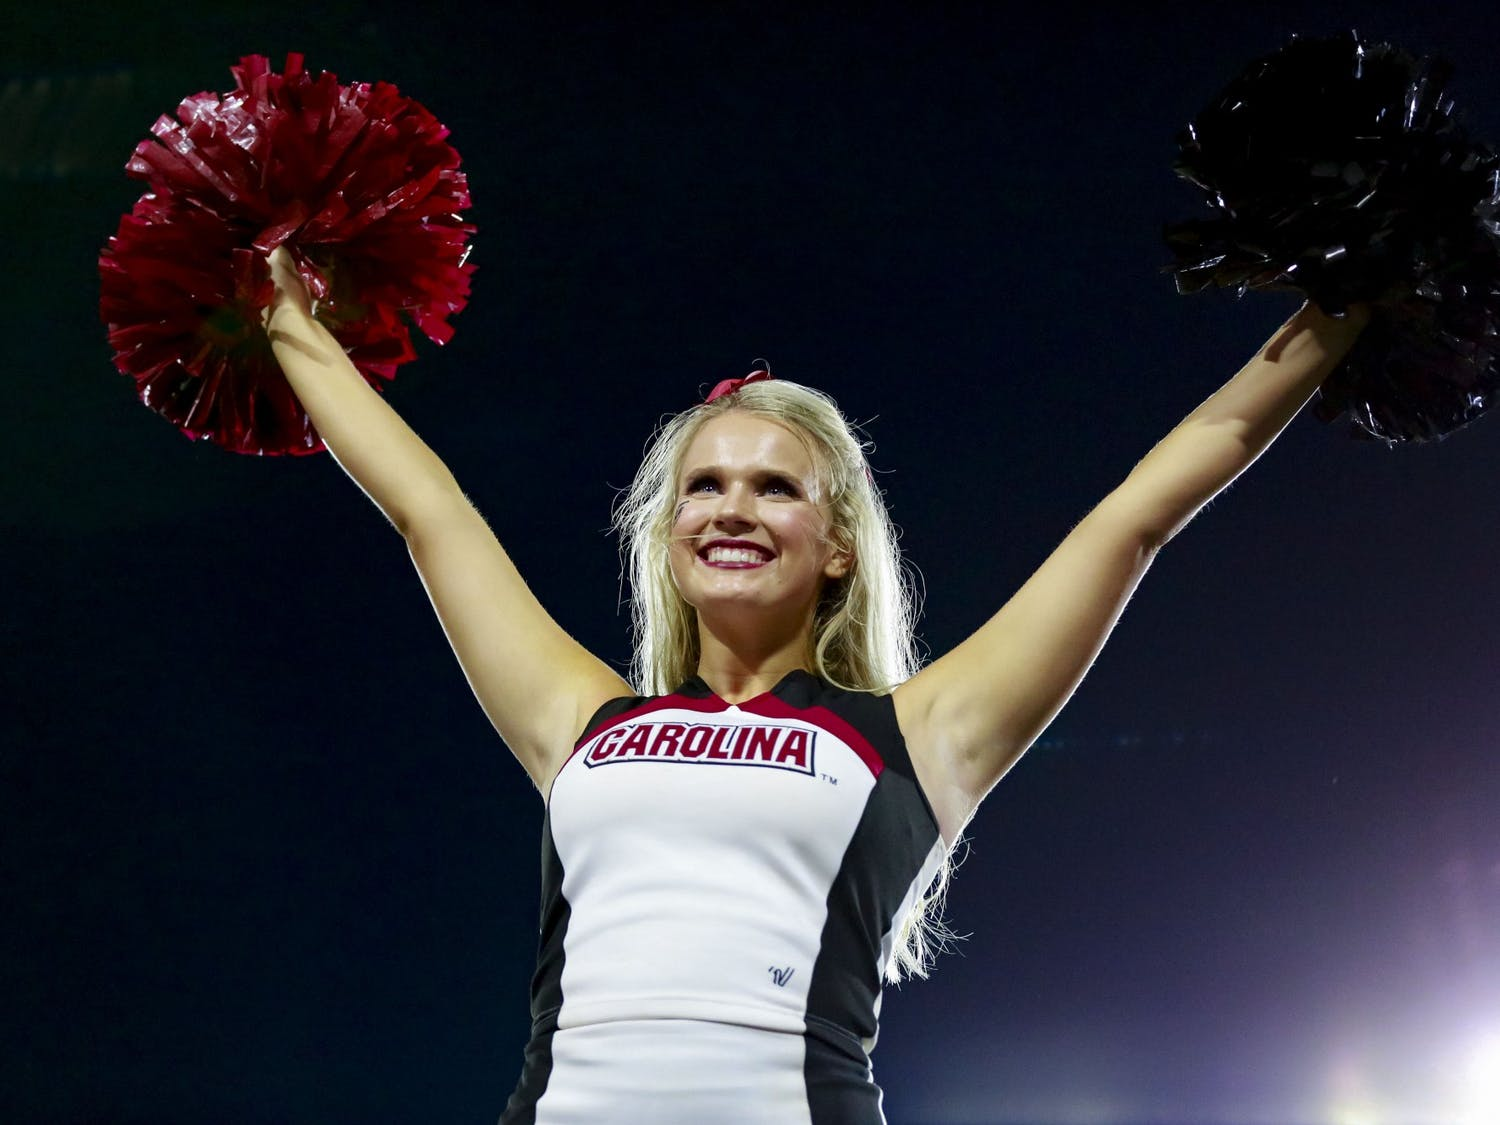 A Gamecock cheerleader performs a stunt during South Carolina's game against Georgia on September 18, 2021.